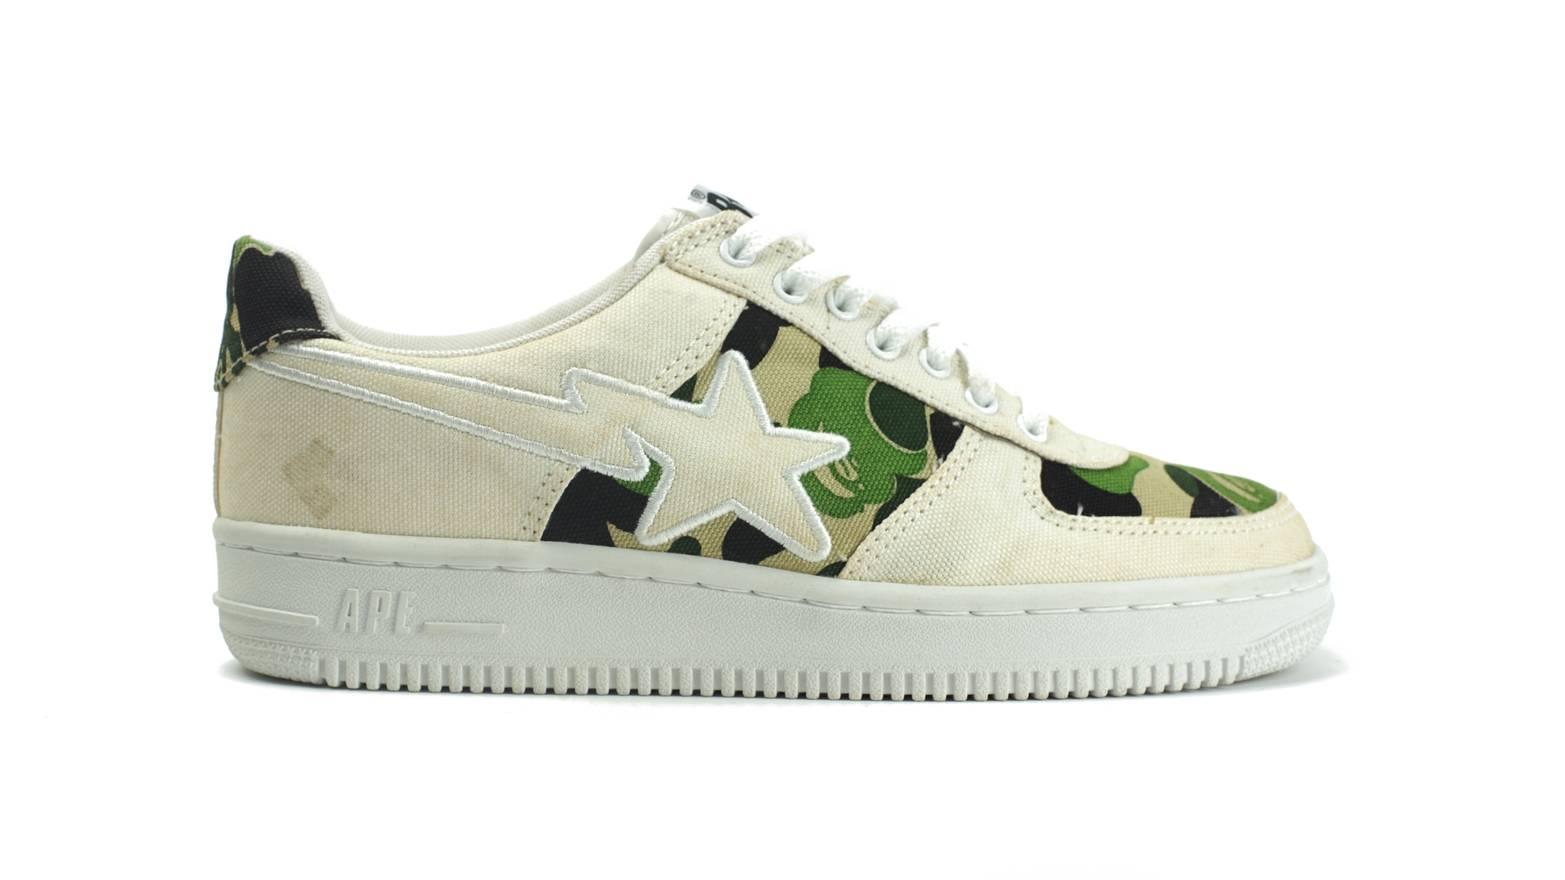 1b5f550786f6 ... ABC Camo Version Bape A Bathing Ape - Green Camo Canvas Bapesta US 8.5  Size US 8.5 EU .